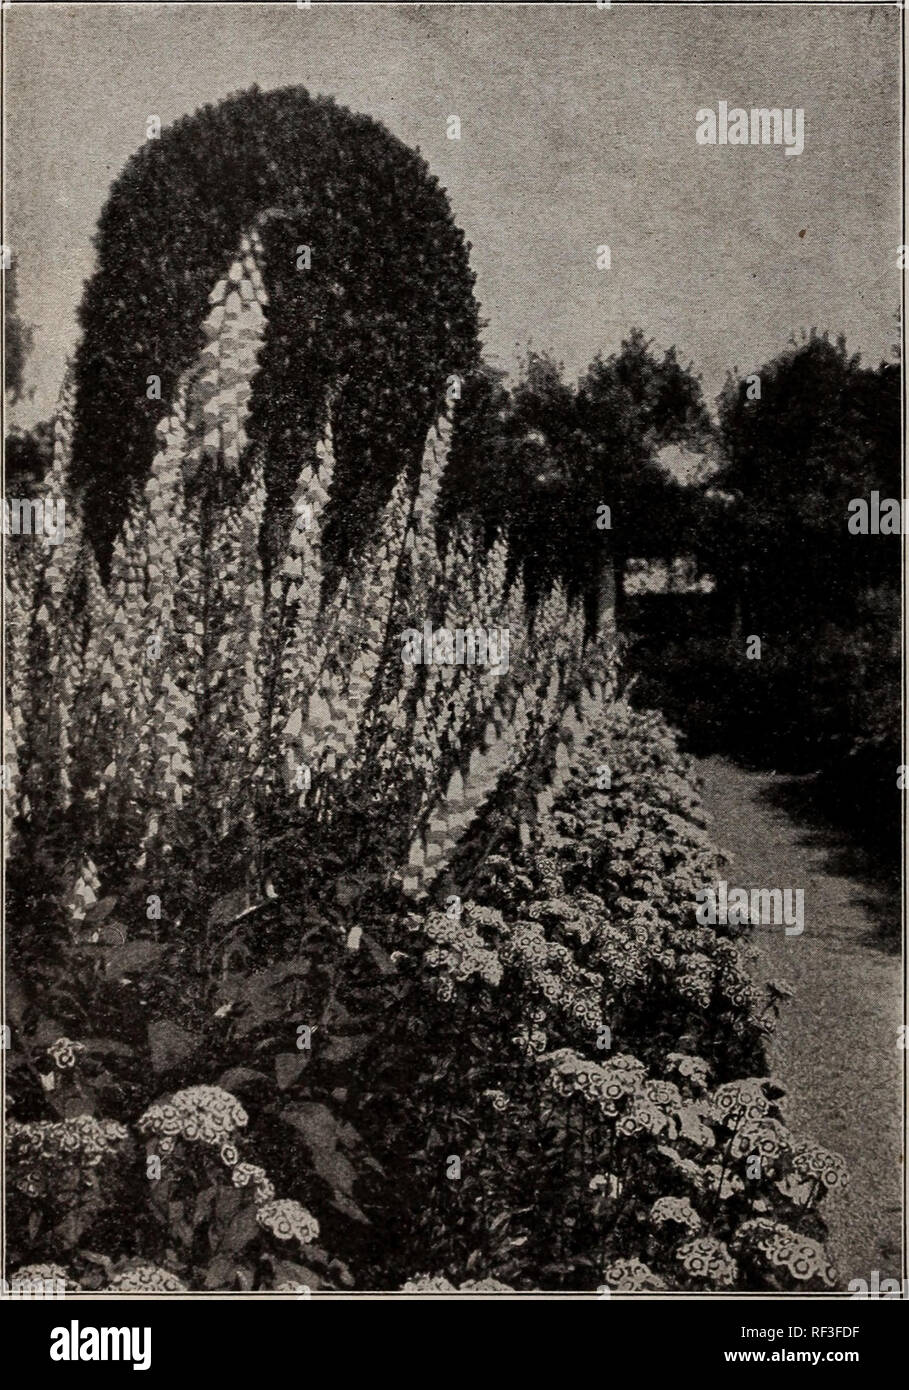 Catalogue 1915 Seeds Bulbs Shrubs Seeds Catalogs Vegetables